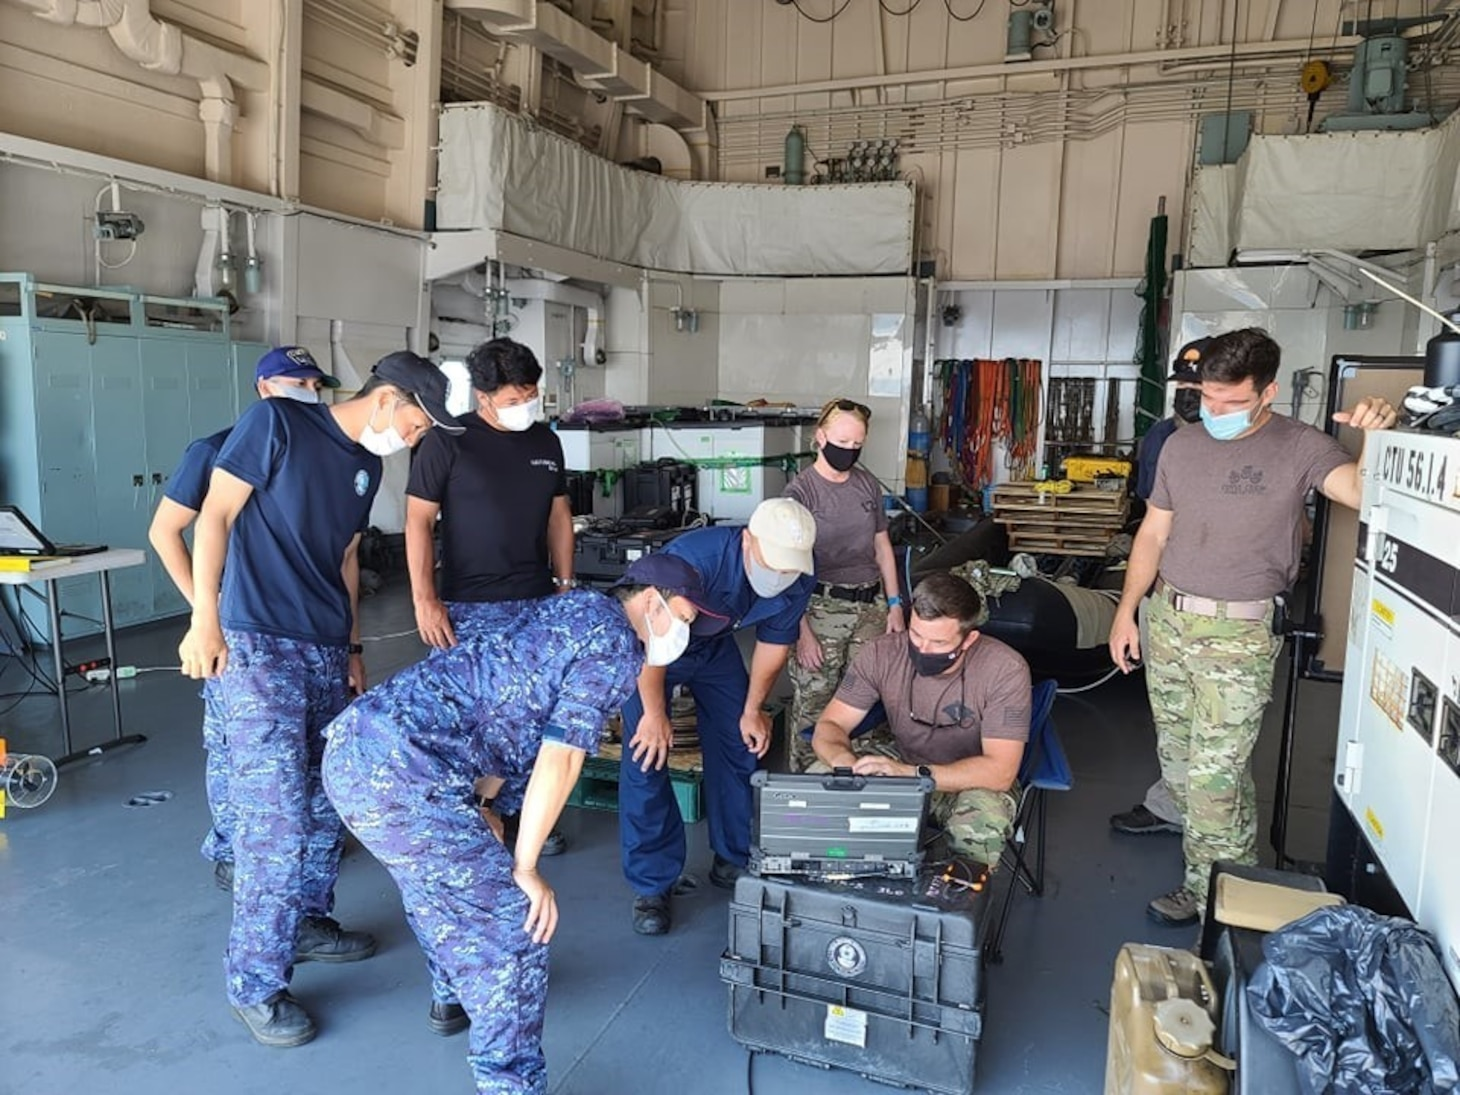 MUTSU BAY (July 19, 2021)- - Members of the Japan Maritime Self-Defense Force (JMSDF) and the U.S. Navy participate in improvised explosive device training  during 2JA Mine Warfare Exercise (MIWEX) in Japan's Mutsu Bay. 2JA MIWEX is an annual bilateral exercise between the U.S. Navy and Japan Maritime Self-Defense Force to strengthen interoperability and increase proficiency in mine countermeasure operations